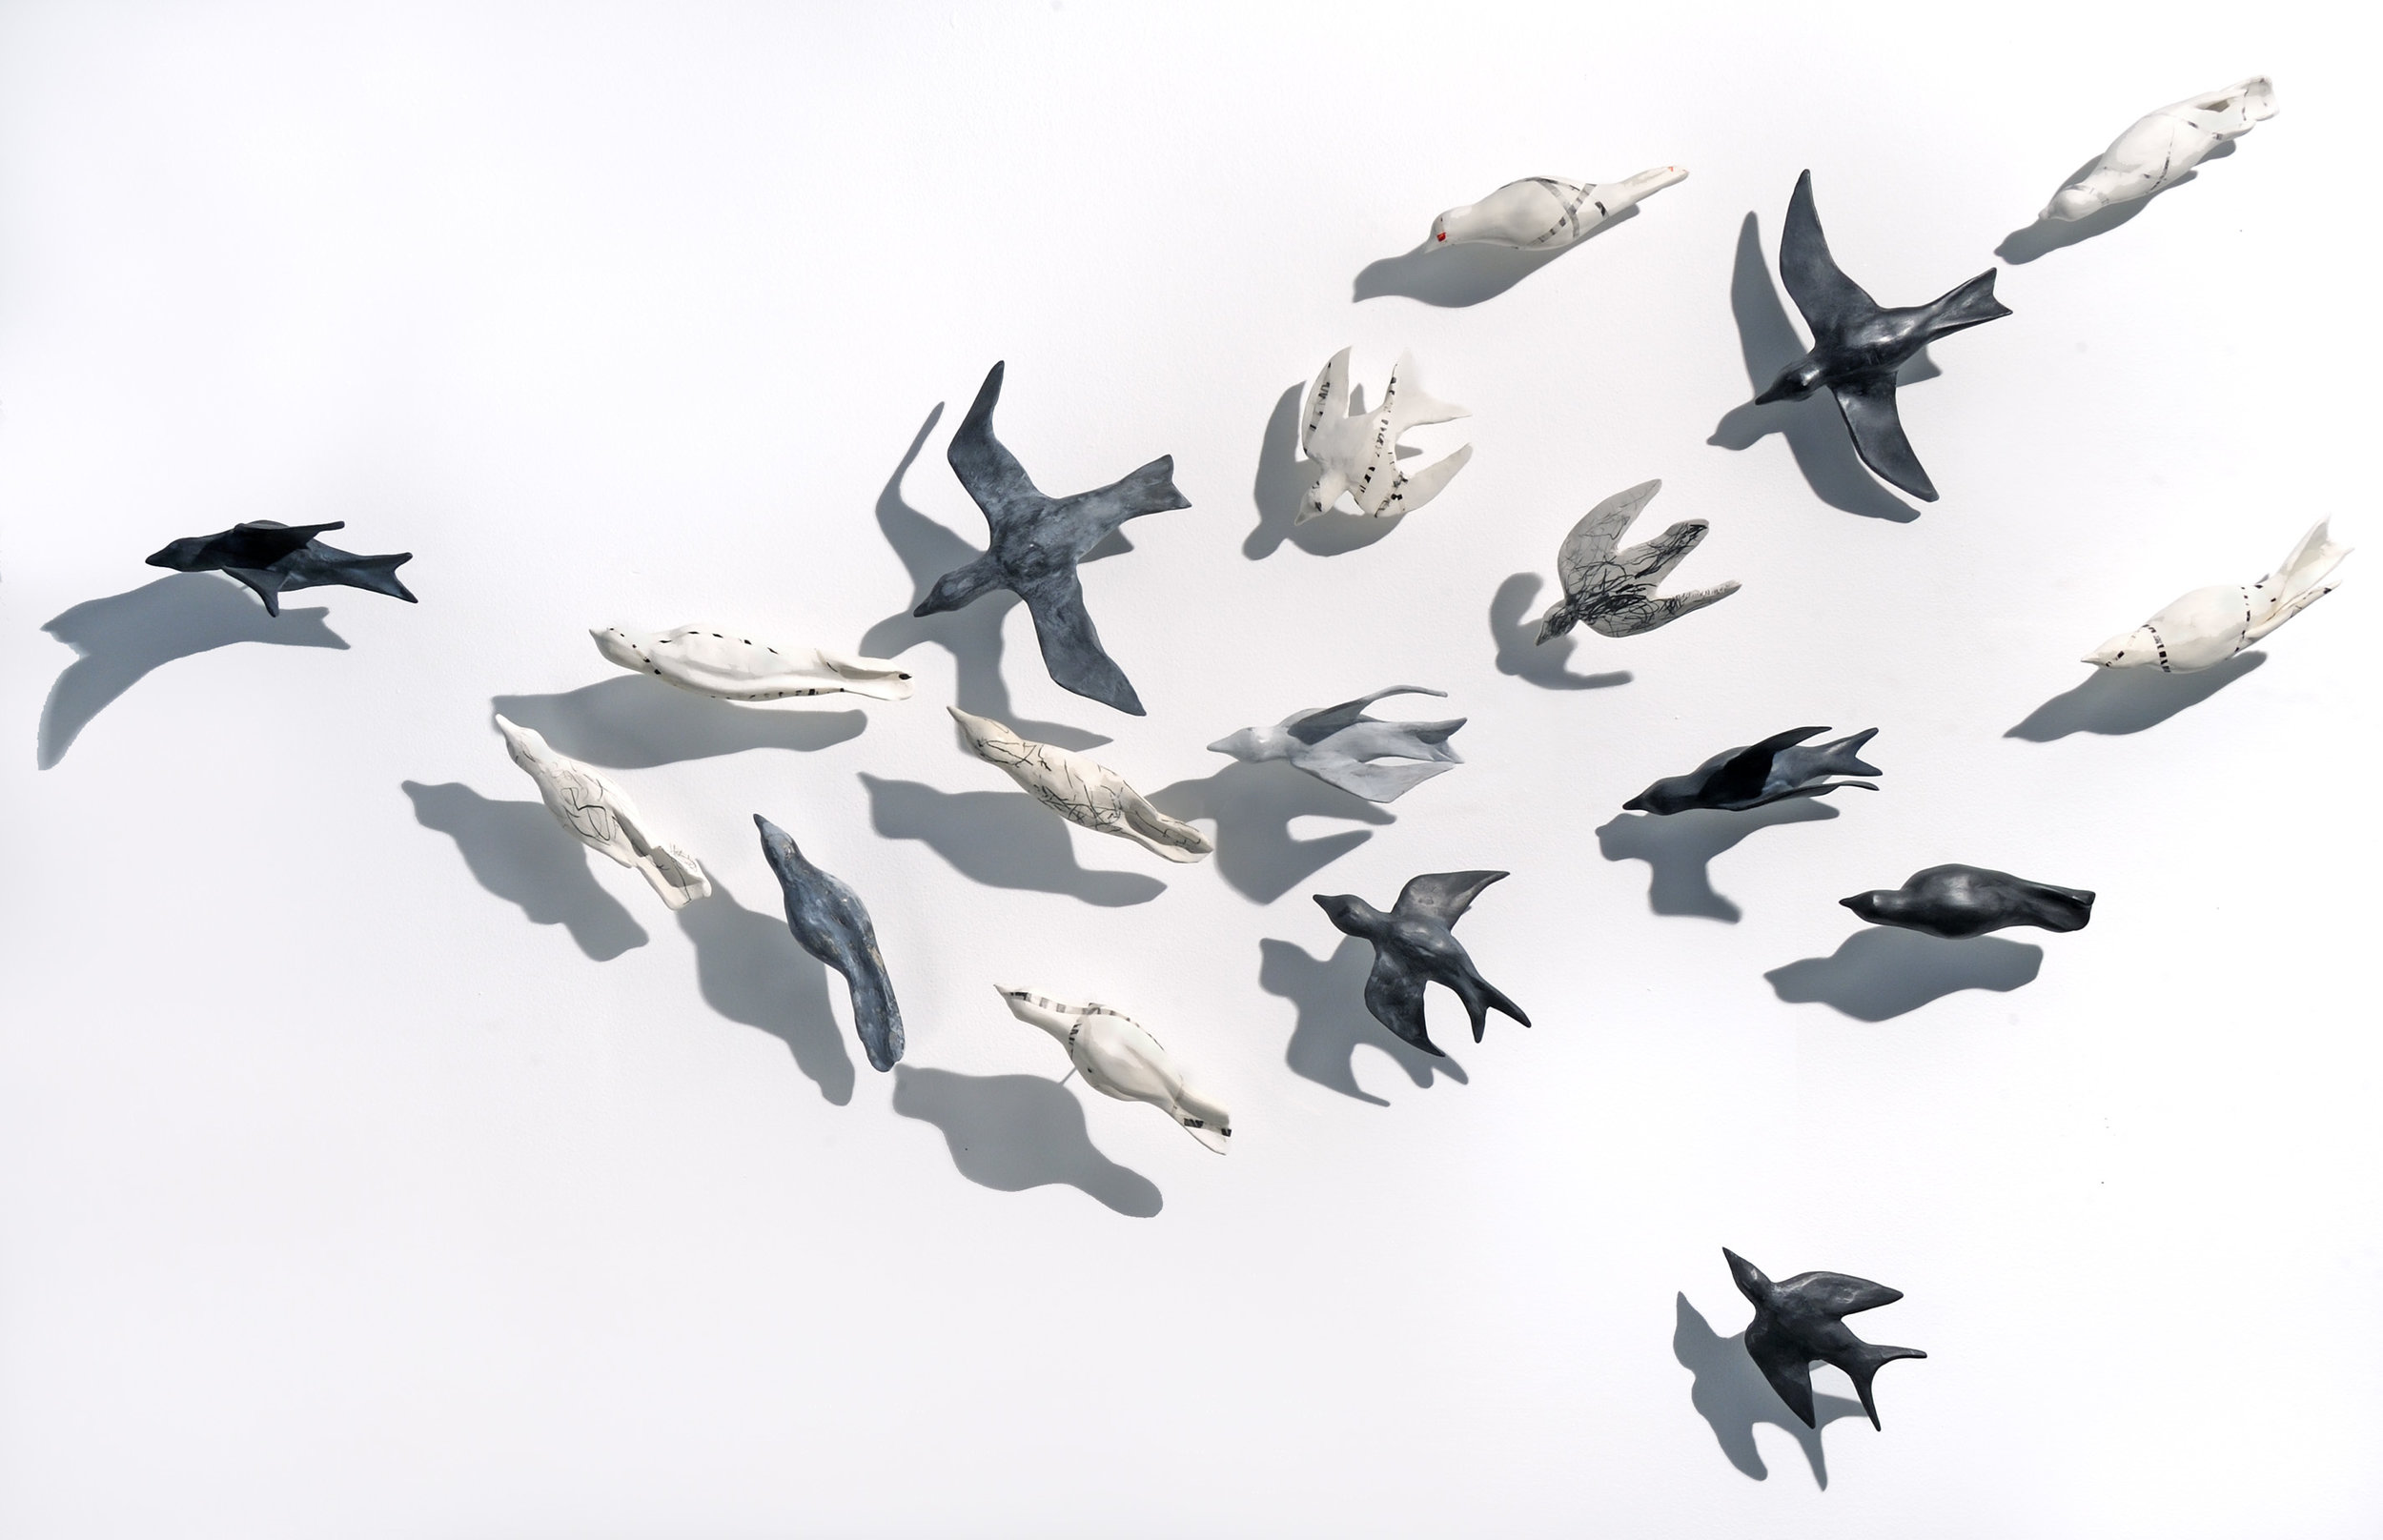 Hostetler_Mixed Migration Flock_2017_clay_3x5ft_$3,400.jpg